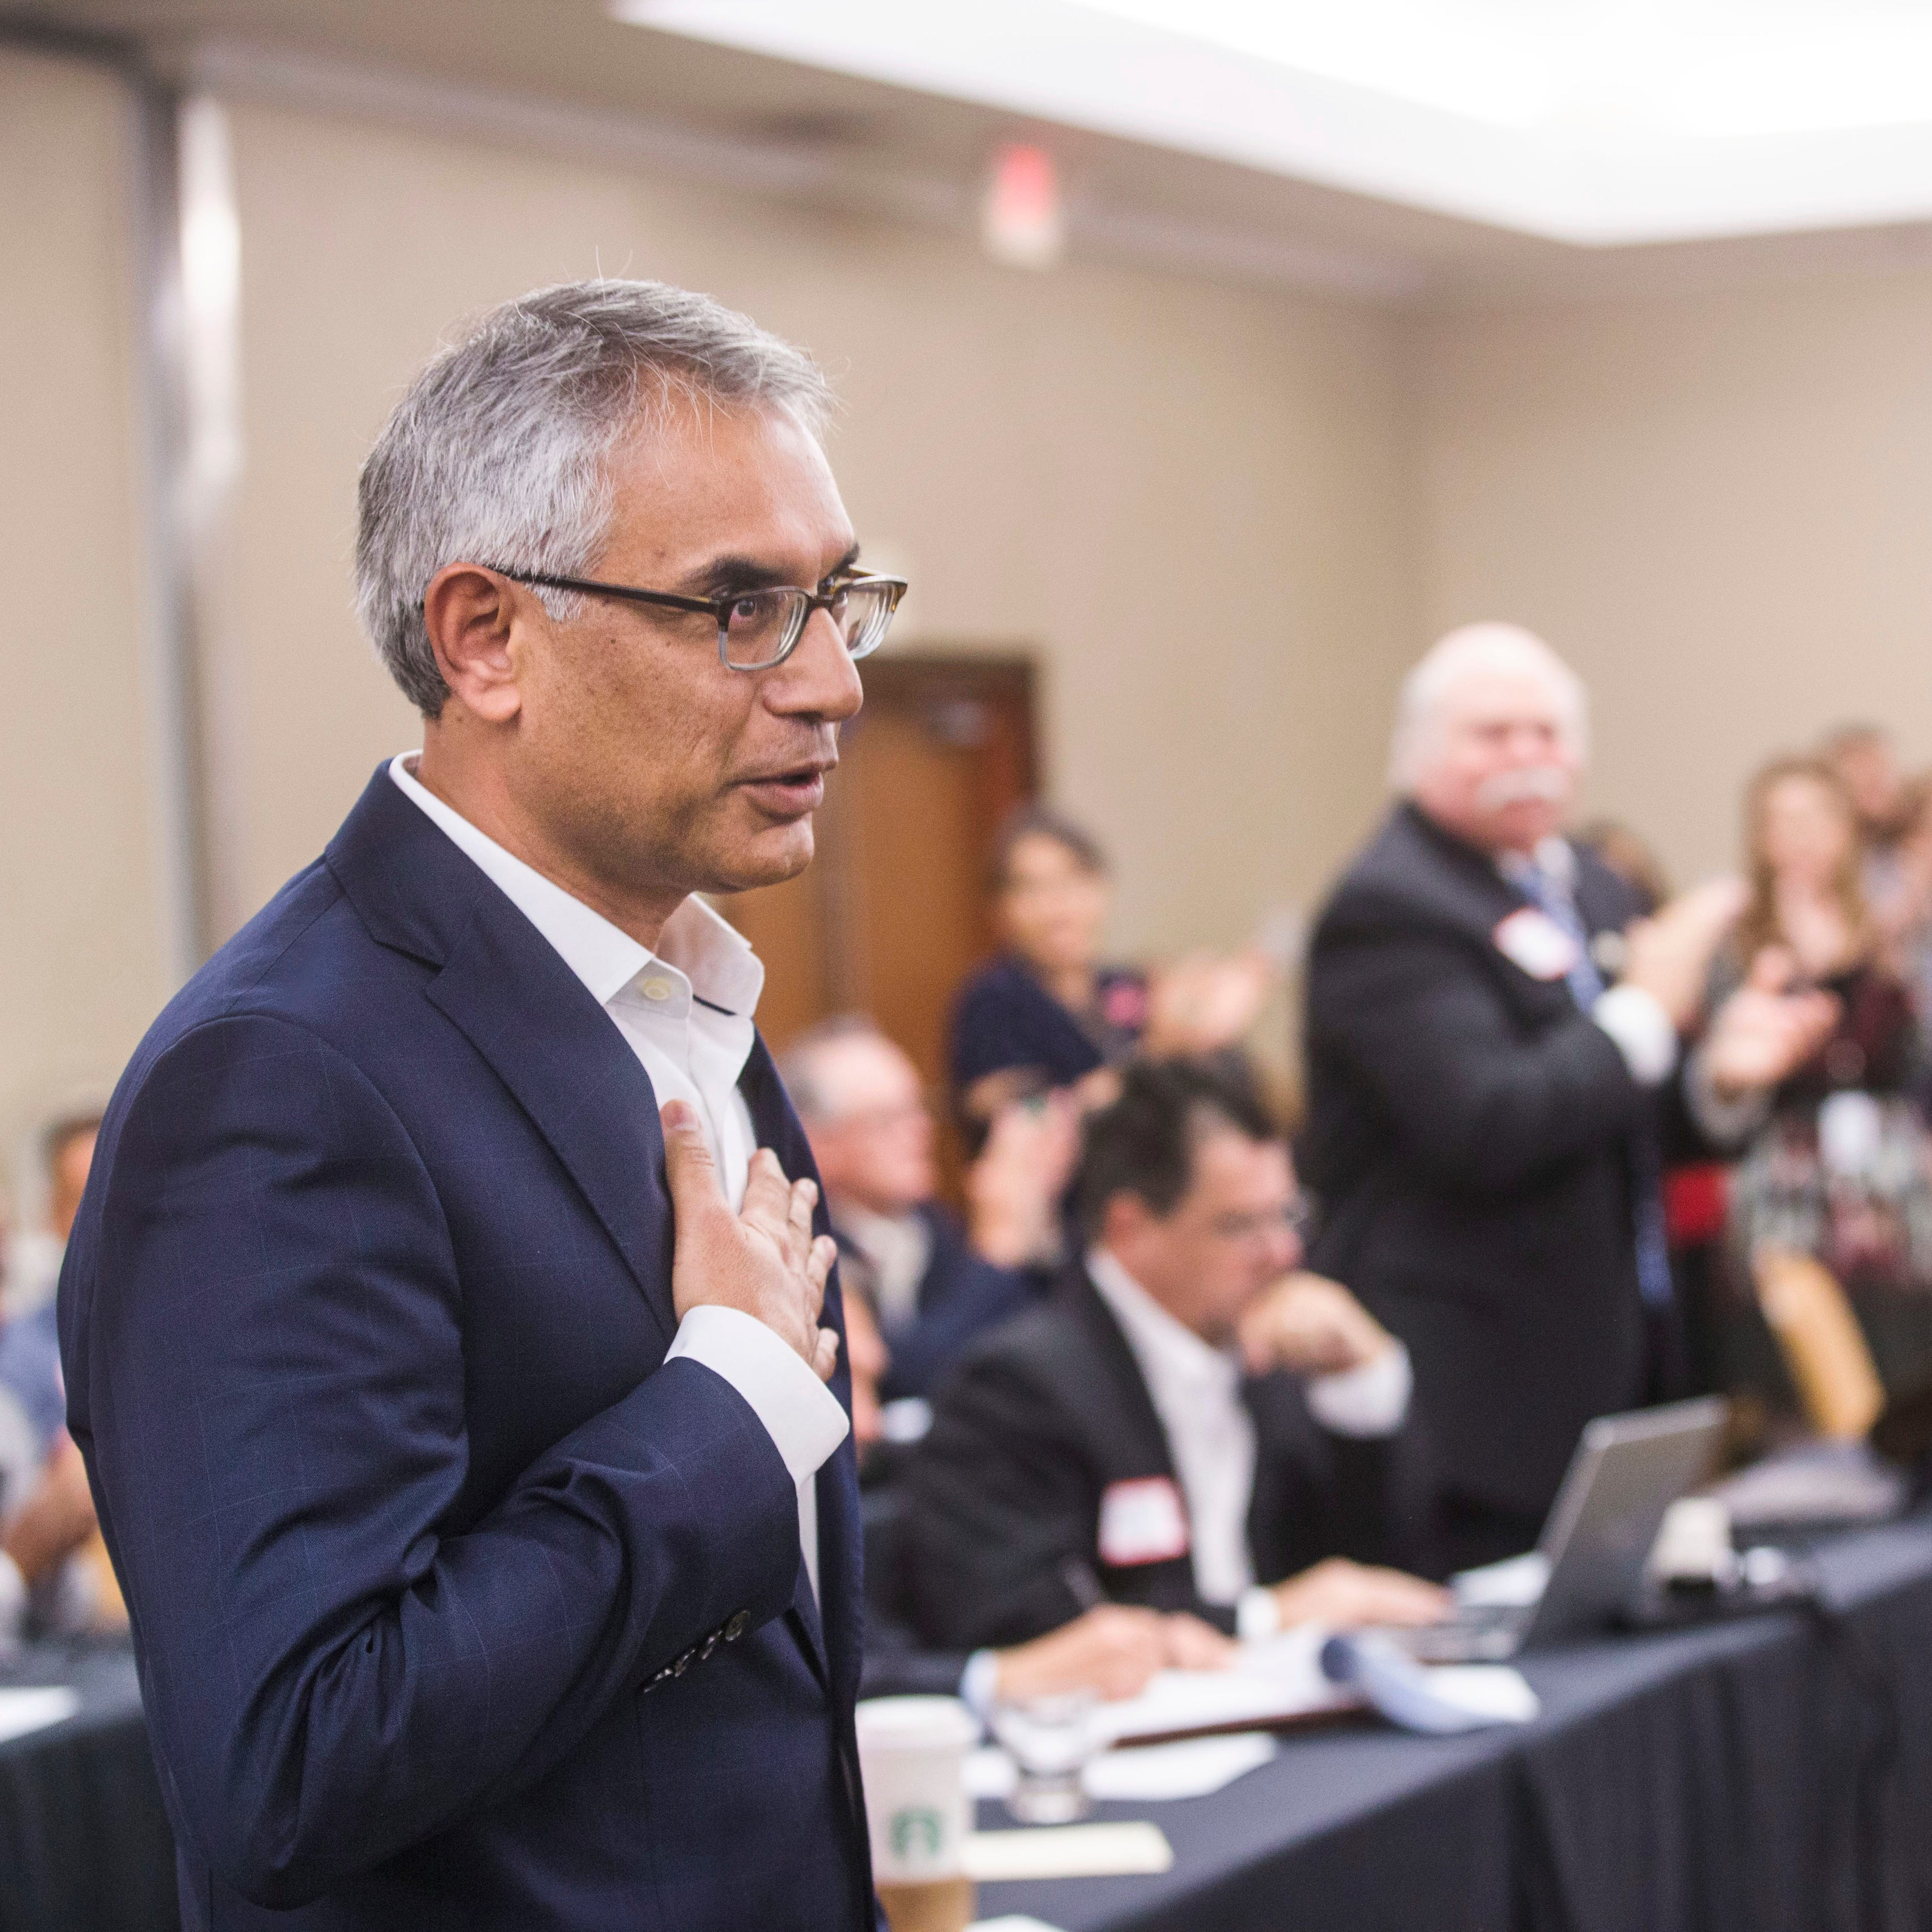 Dr. Shahid Shafi, speaks before members of the State Republican Executive Committee, following a vote in favor of resolution that opposes an effort by the Tarrant County Republican Party (TCRP) to remove him as vice chair because of his religion, during the committee's quarterly meeting on Dec. 1, 2018, in Austin. Email exchanges involving county Republican leaders in Texas reveal efforts to remove Shafi, a party vice chairman because he's Muslim.